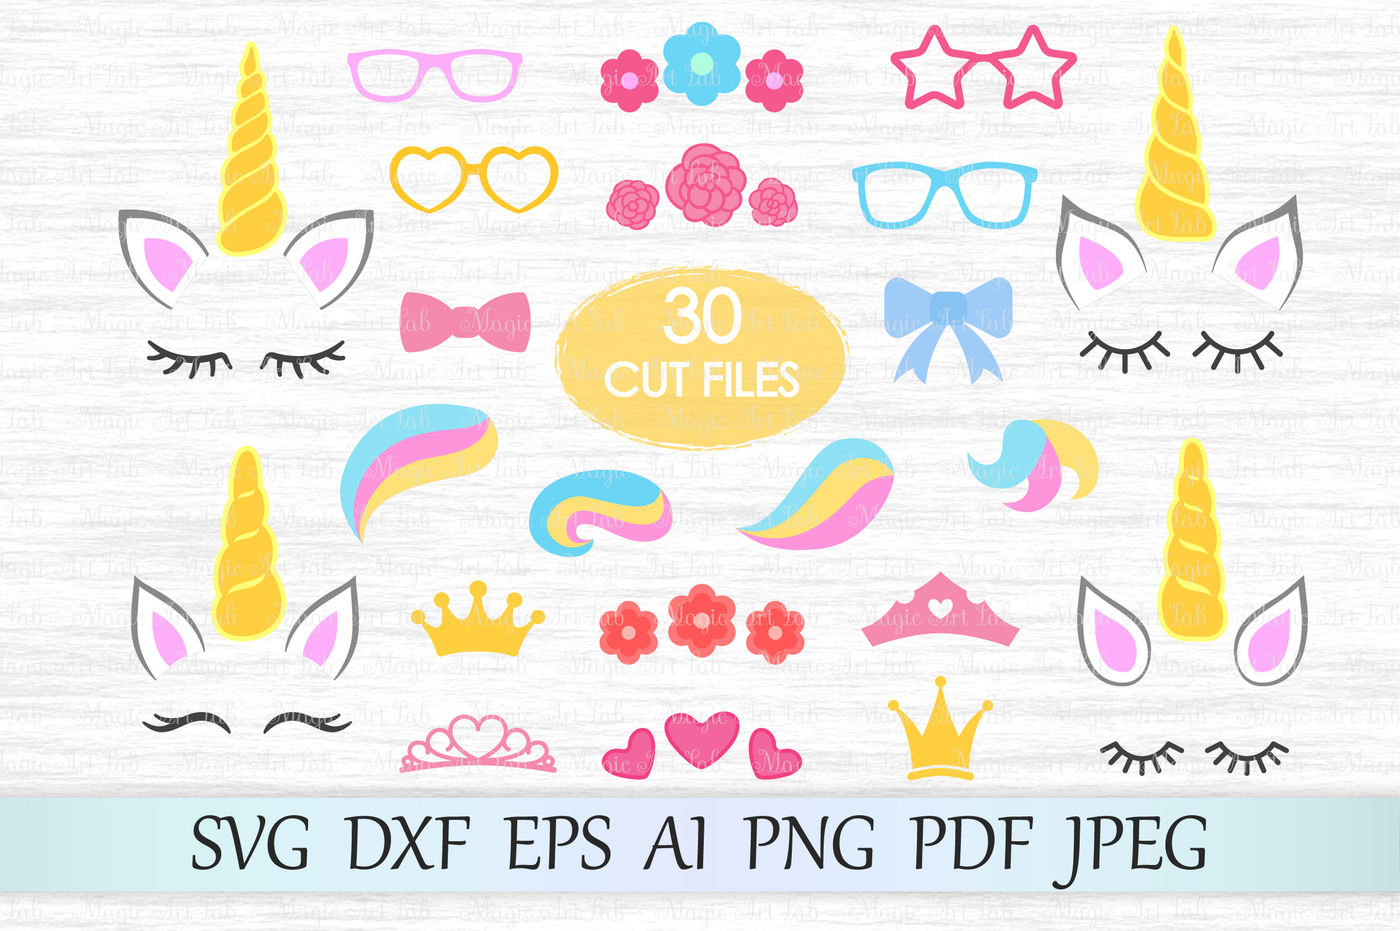 Unicorn Kit Svg Dxf Eps Ai Png Pdf Jpeg By Magicartlab